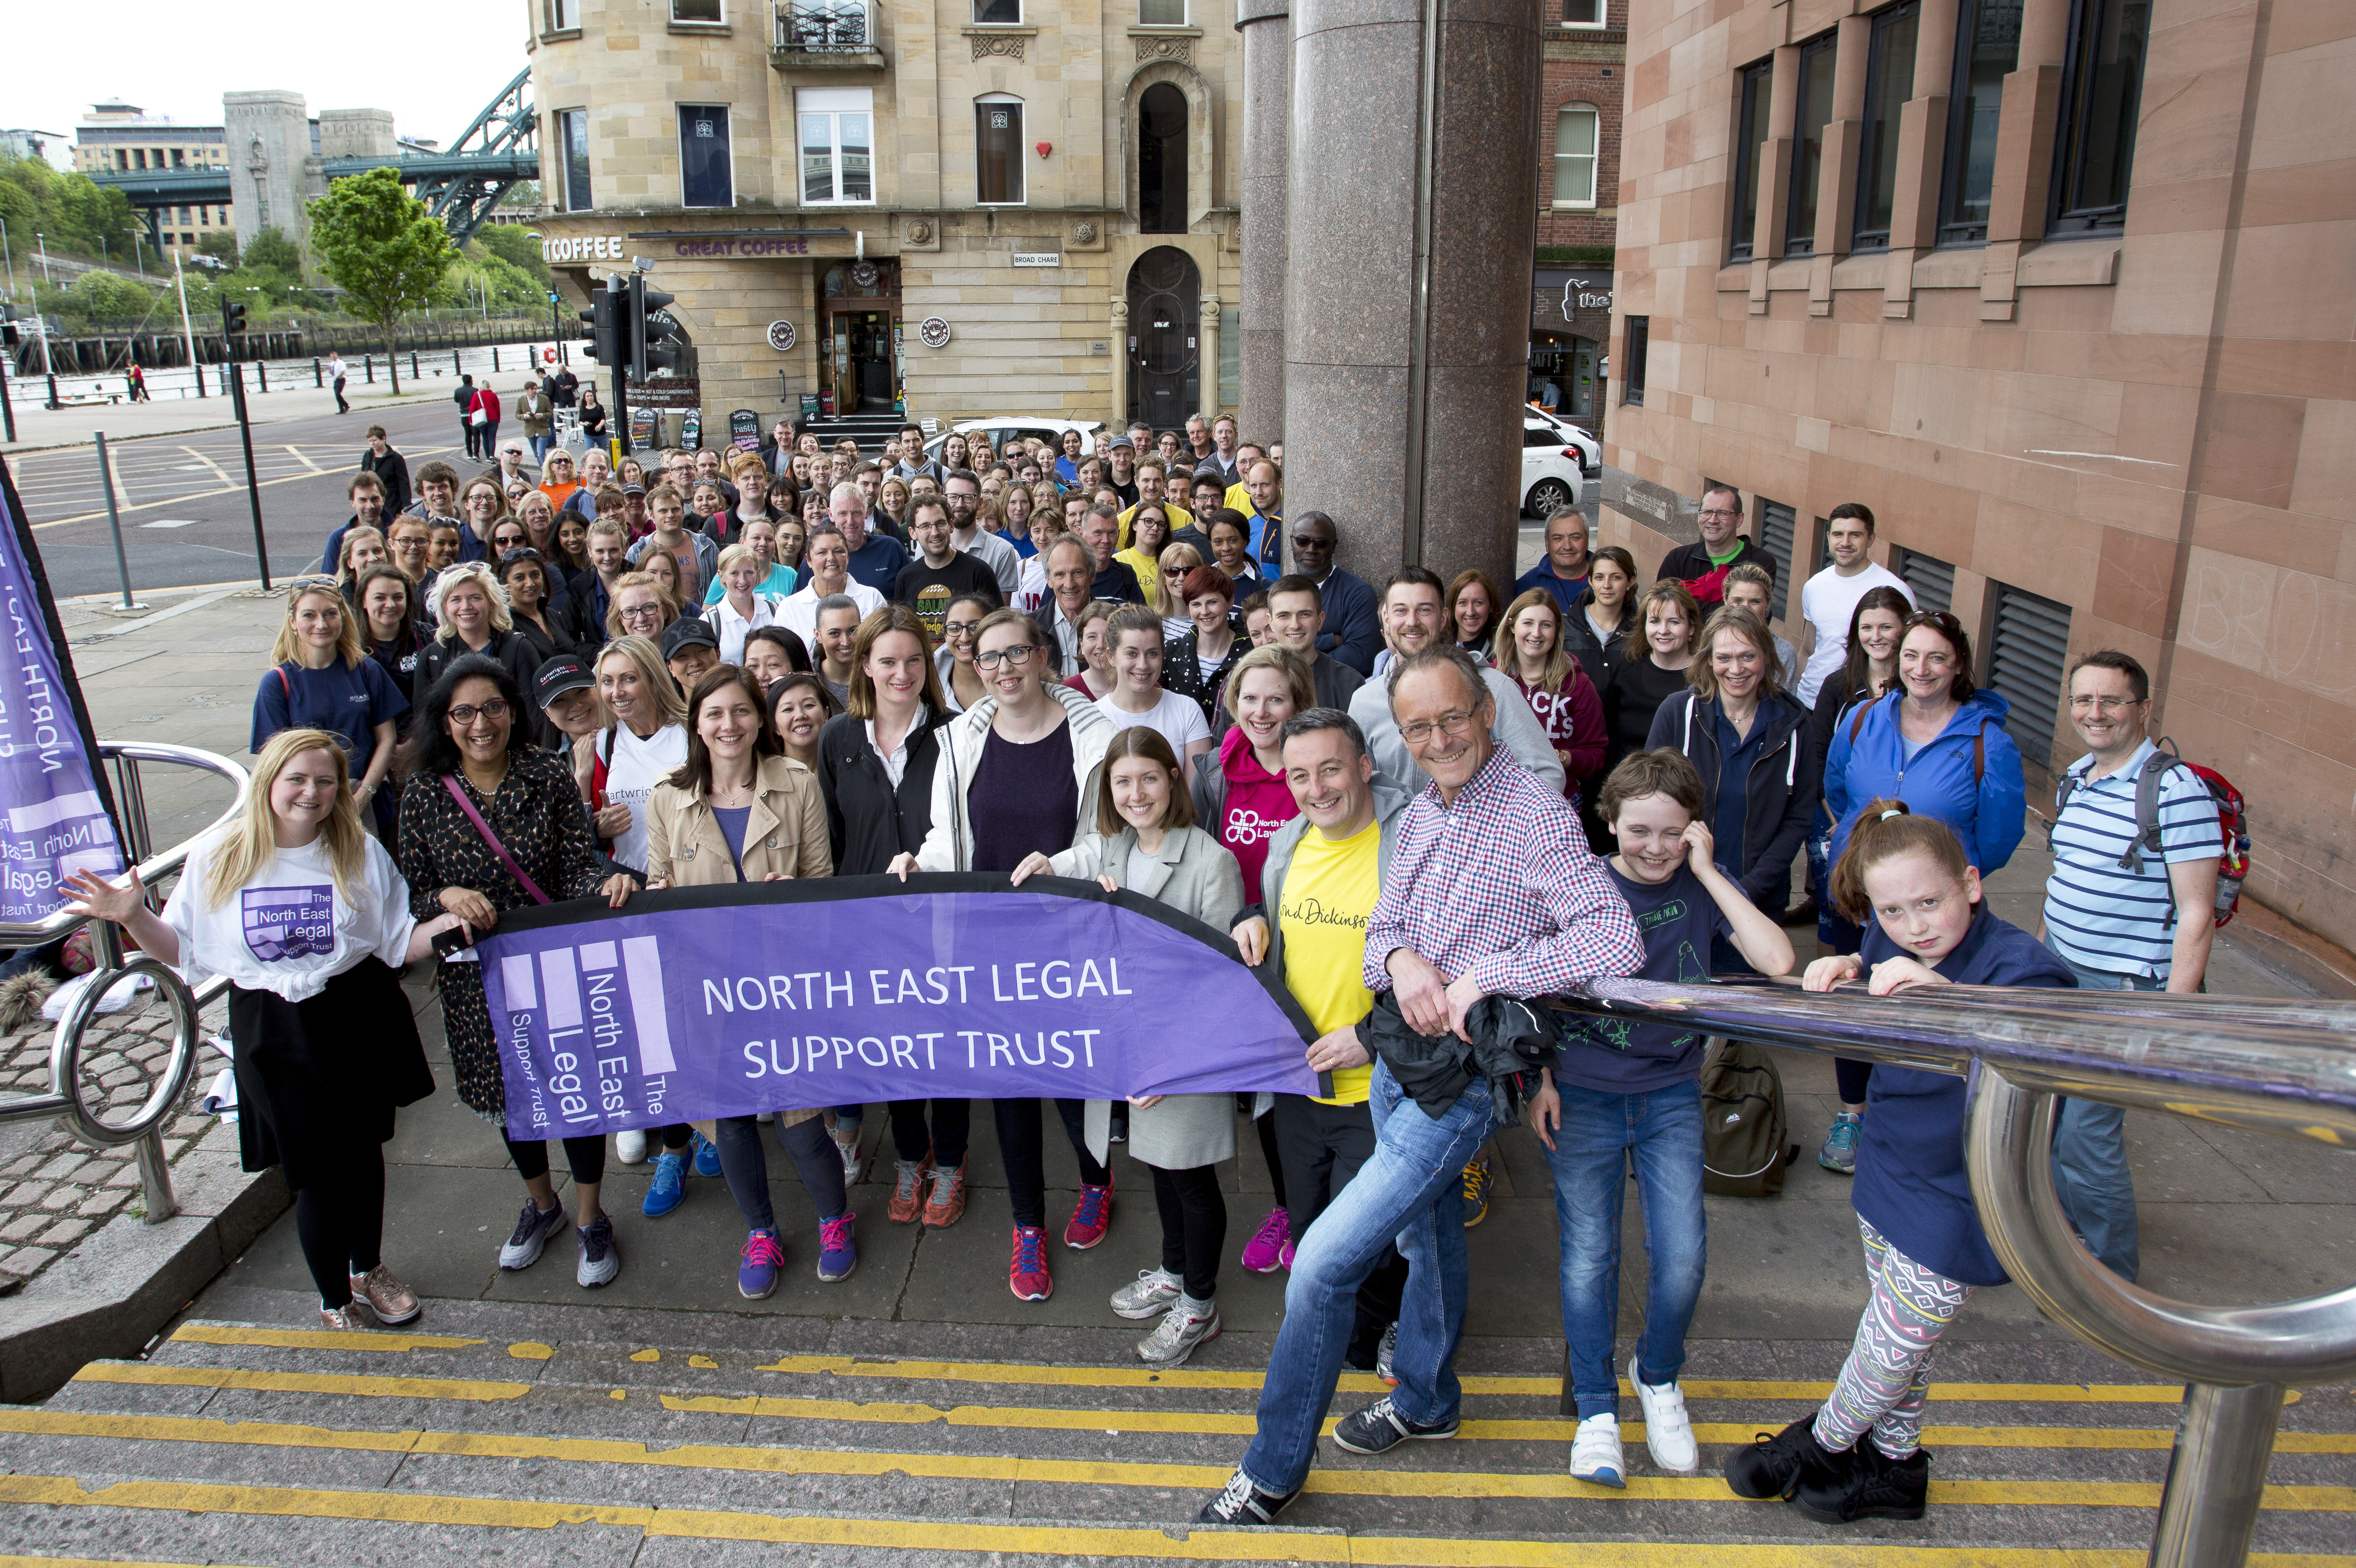 North East Legal Walkers